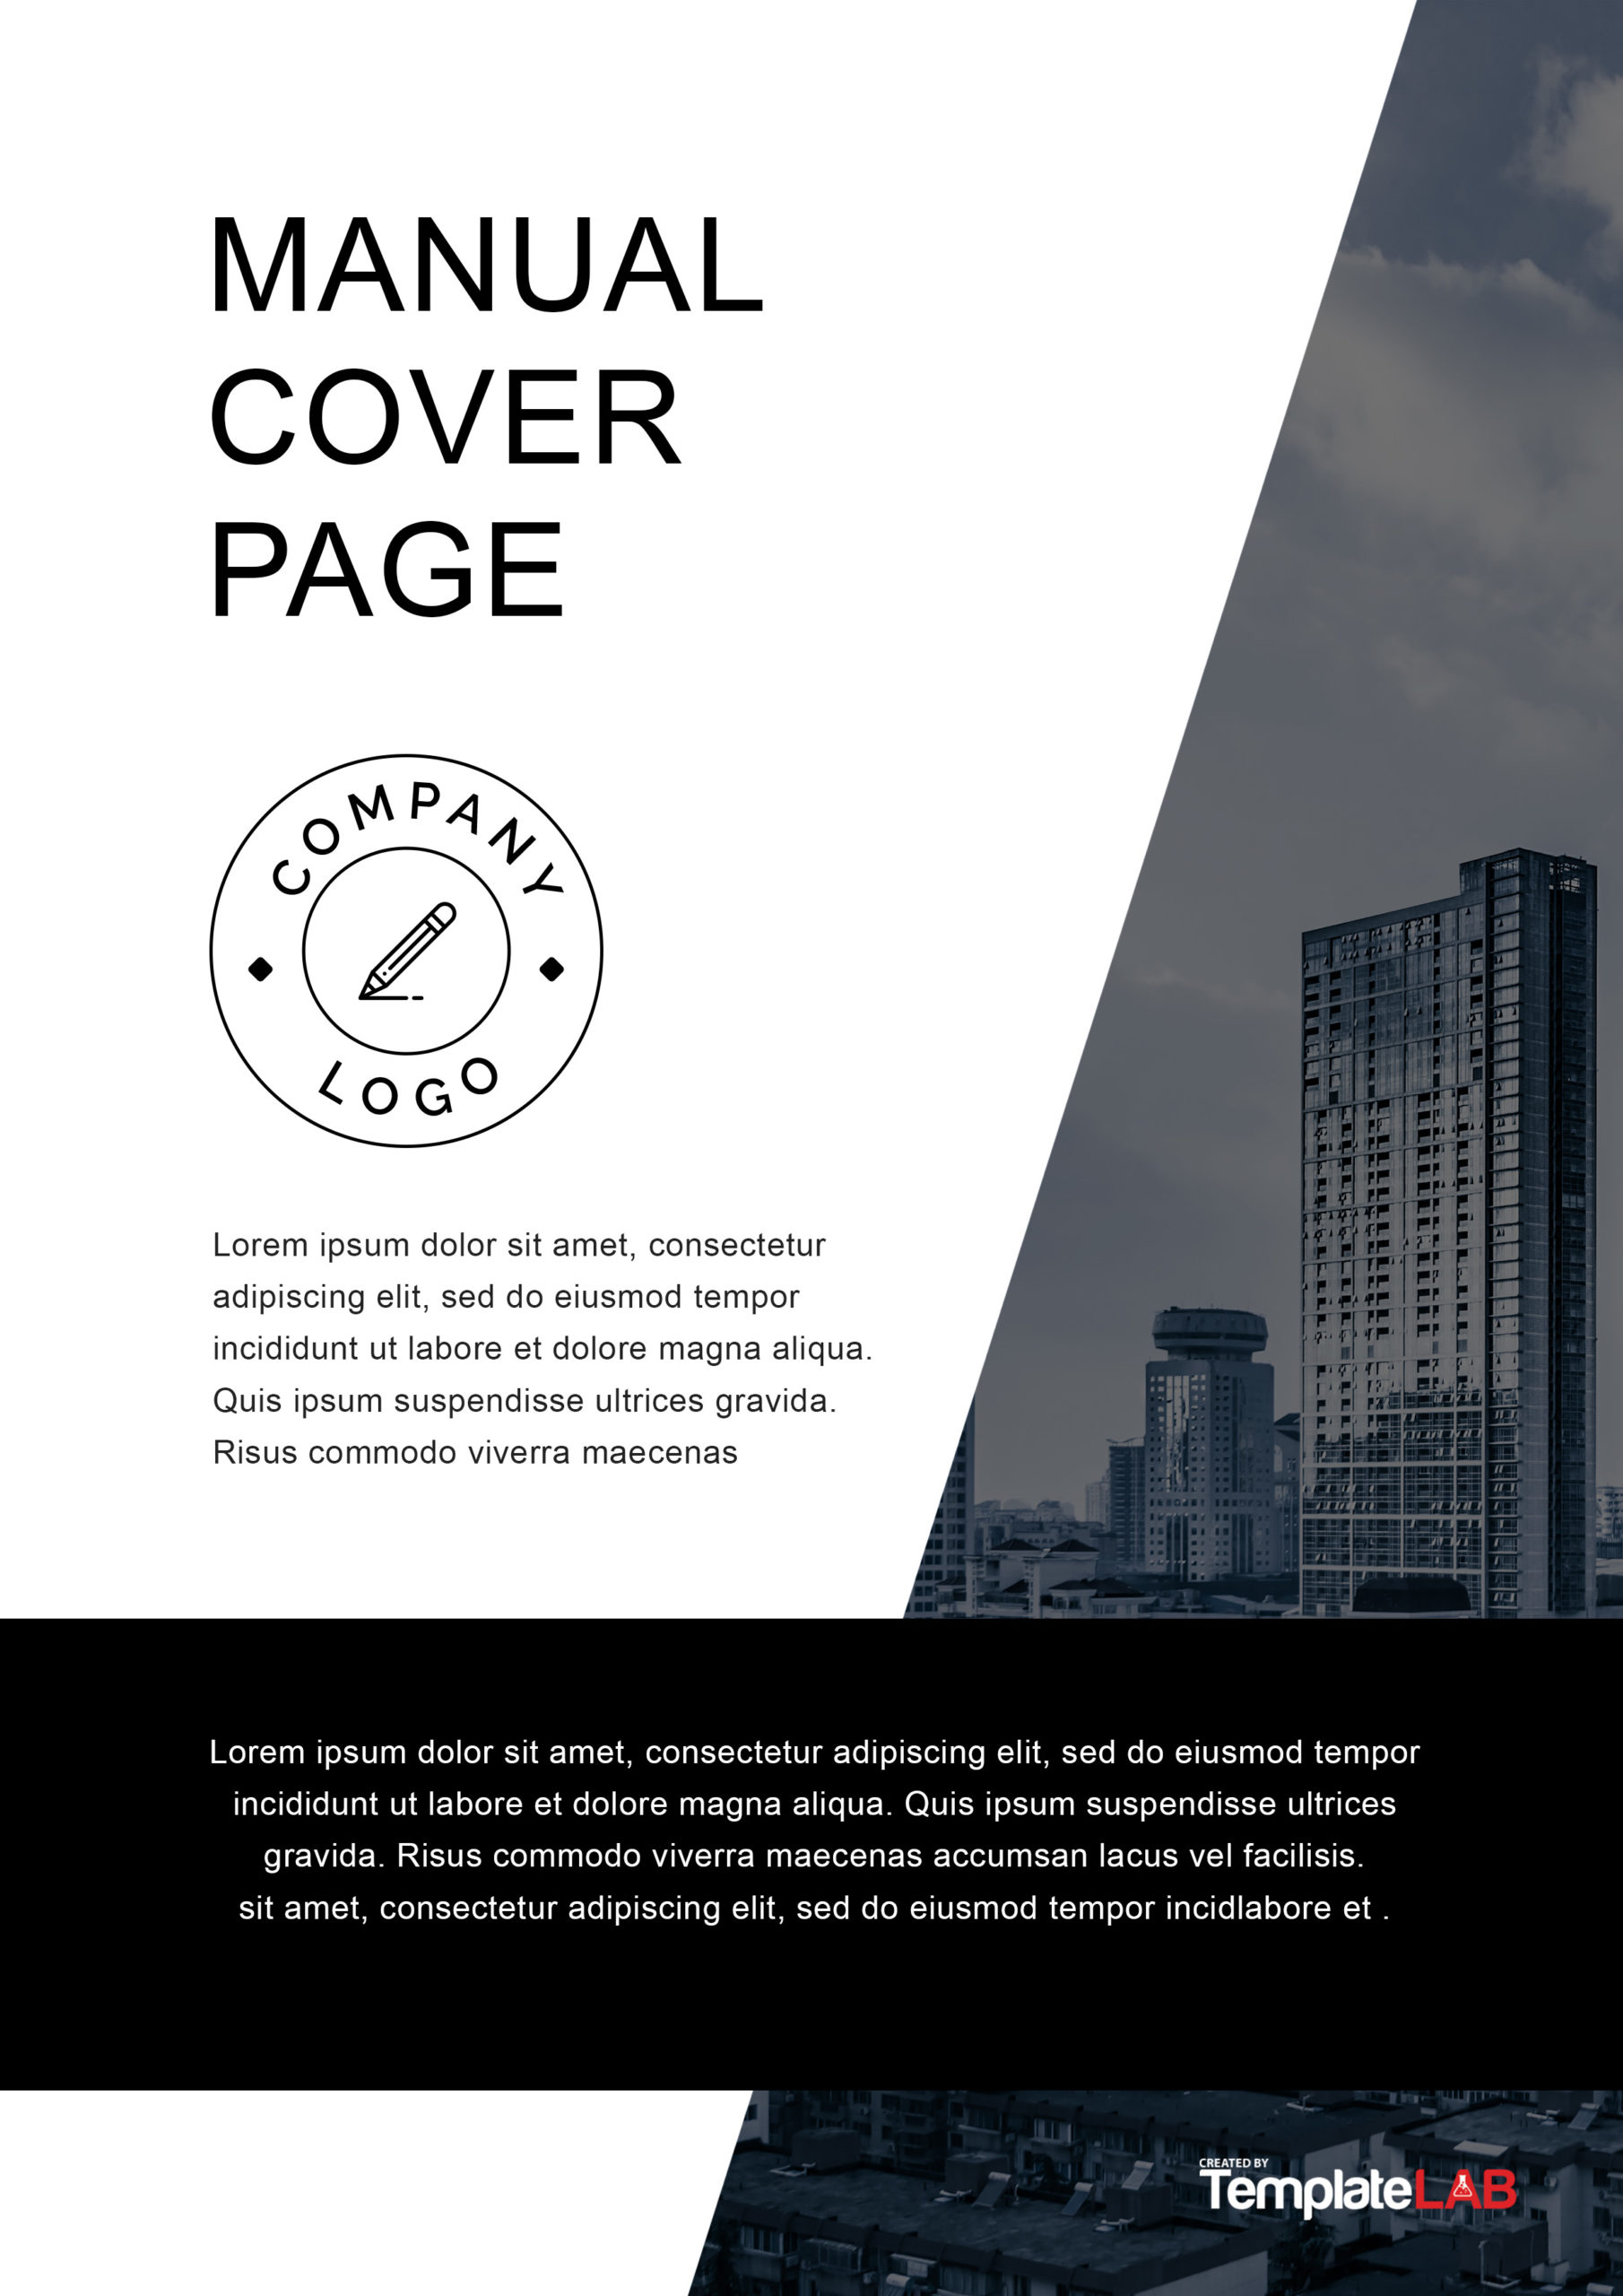 Free Manual Cover Page Template